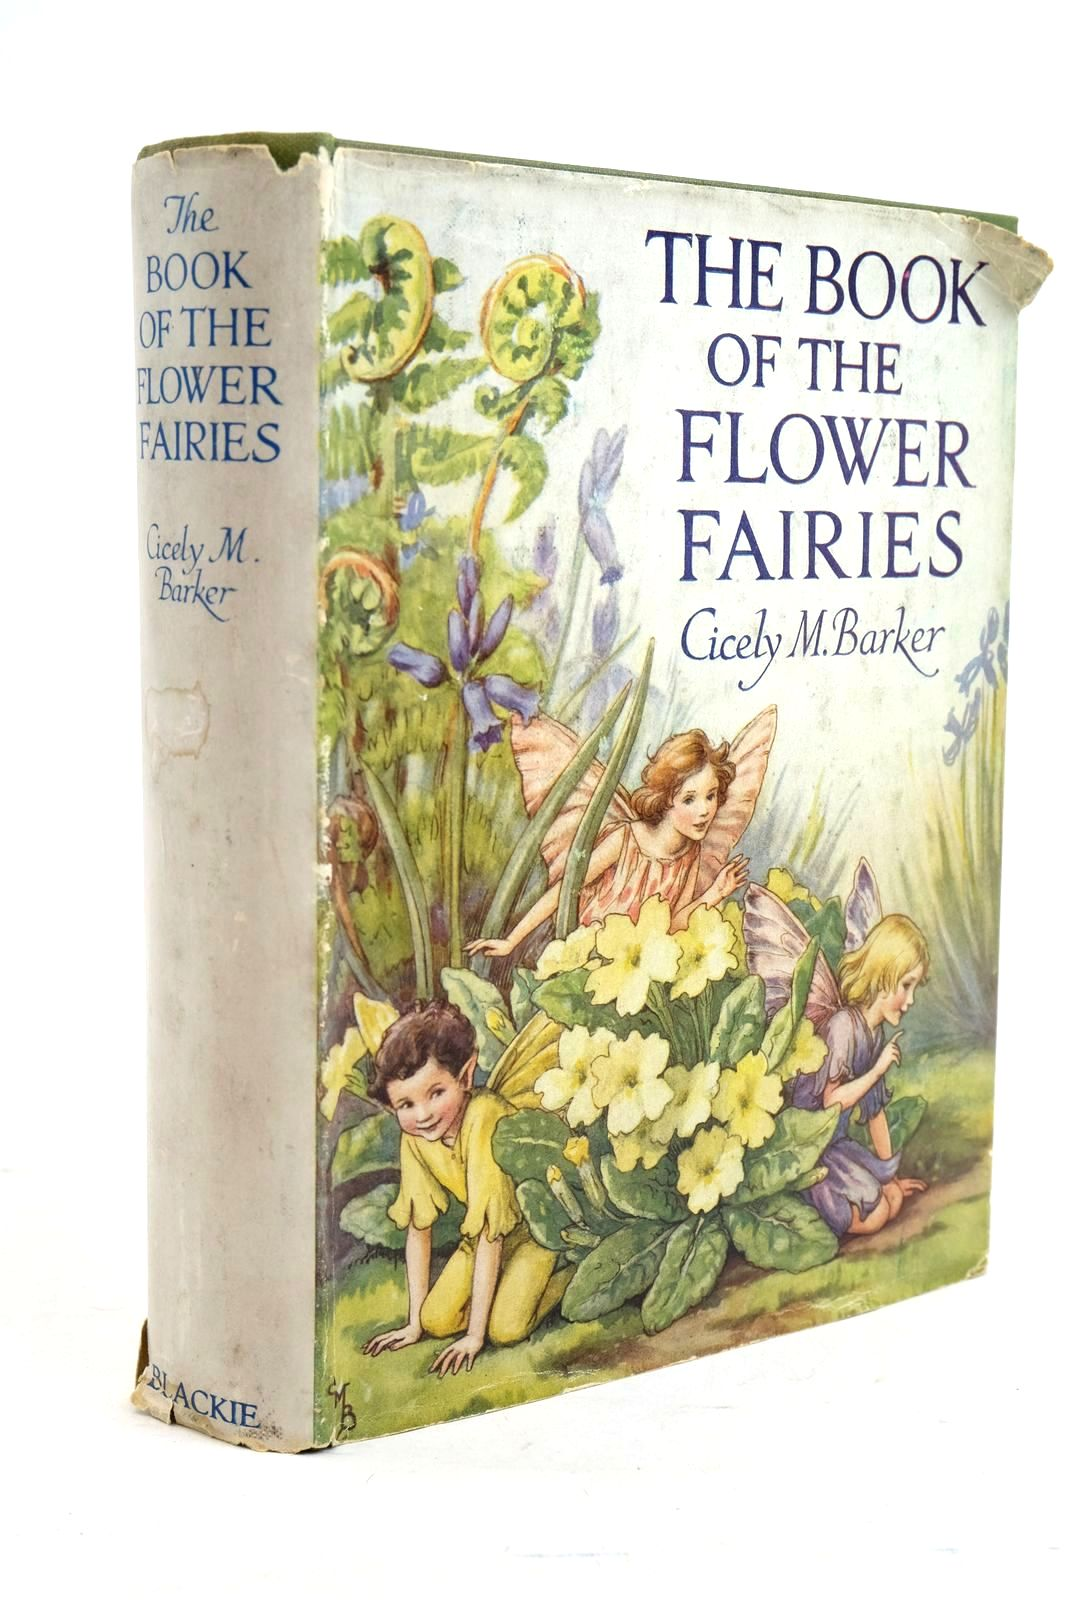 Photo of THE BOOK OF THE FLOWER FAIRIES written by Barker, Cicely Mary illustrated by Barker, Cicely Mary published by Blackie & Son Ltd. (STOCK CODE: 1320820)  for sale by Stella & Rose's Books